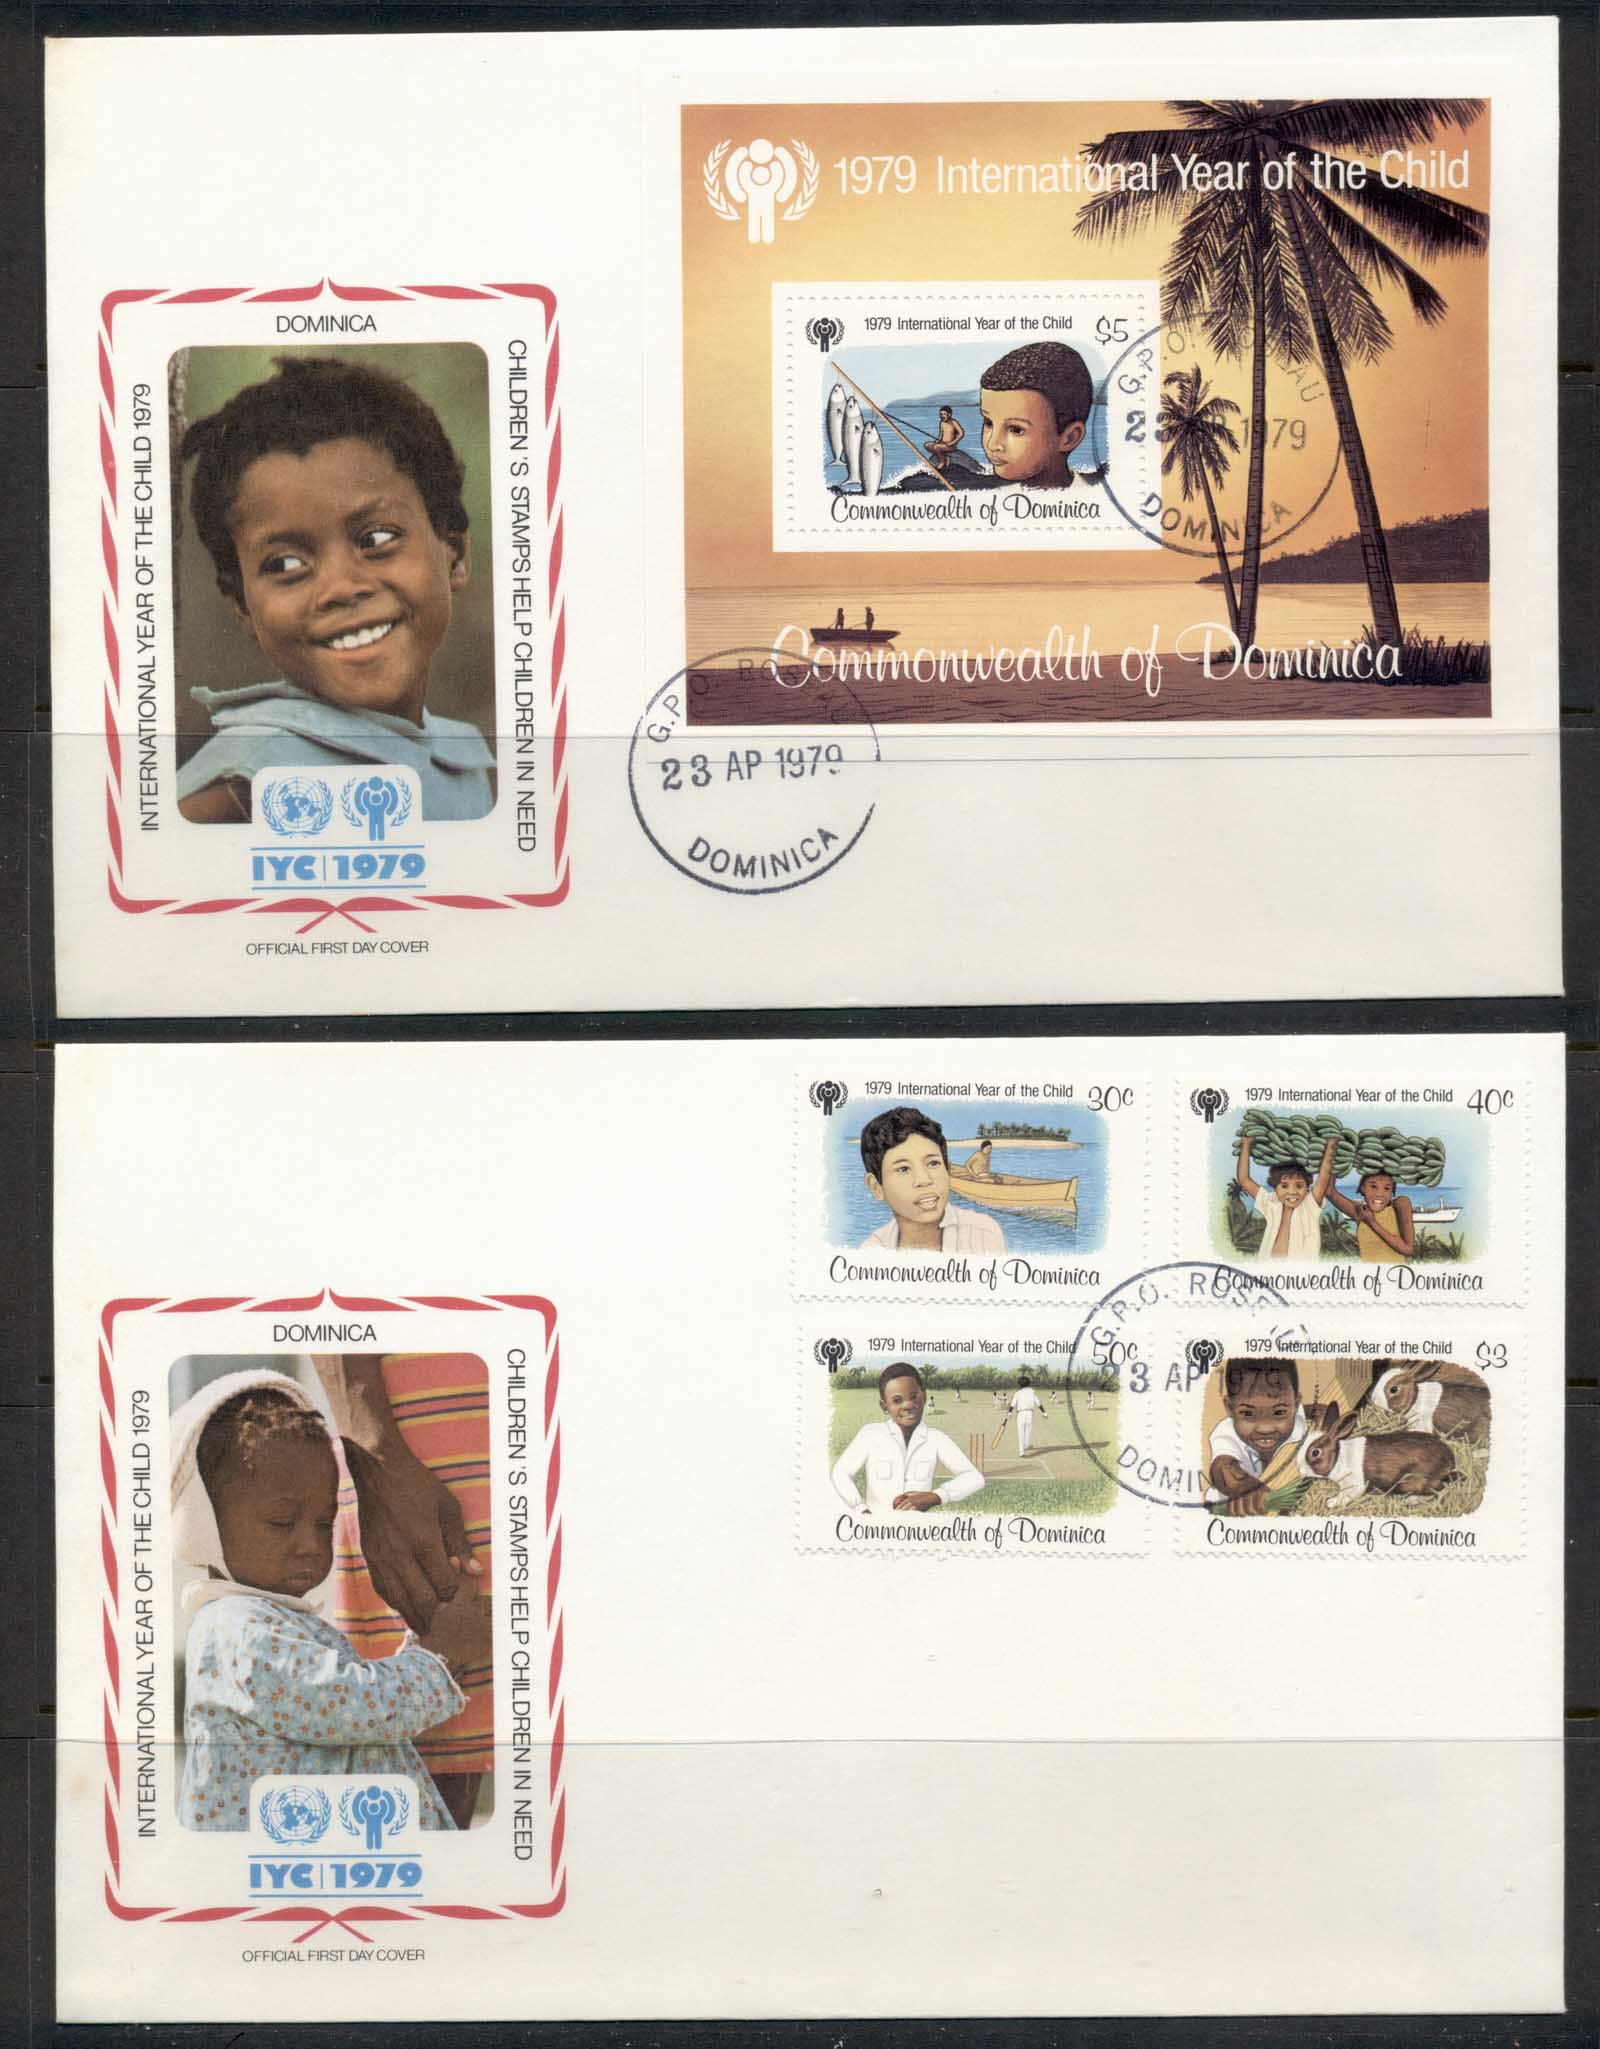 Dominica 1979 IYC International year of the Child +MS 2x FDC